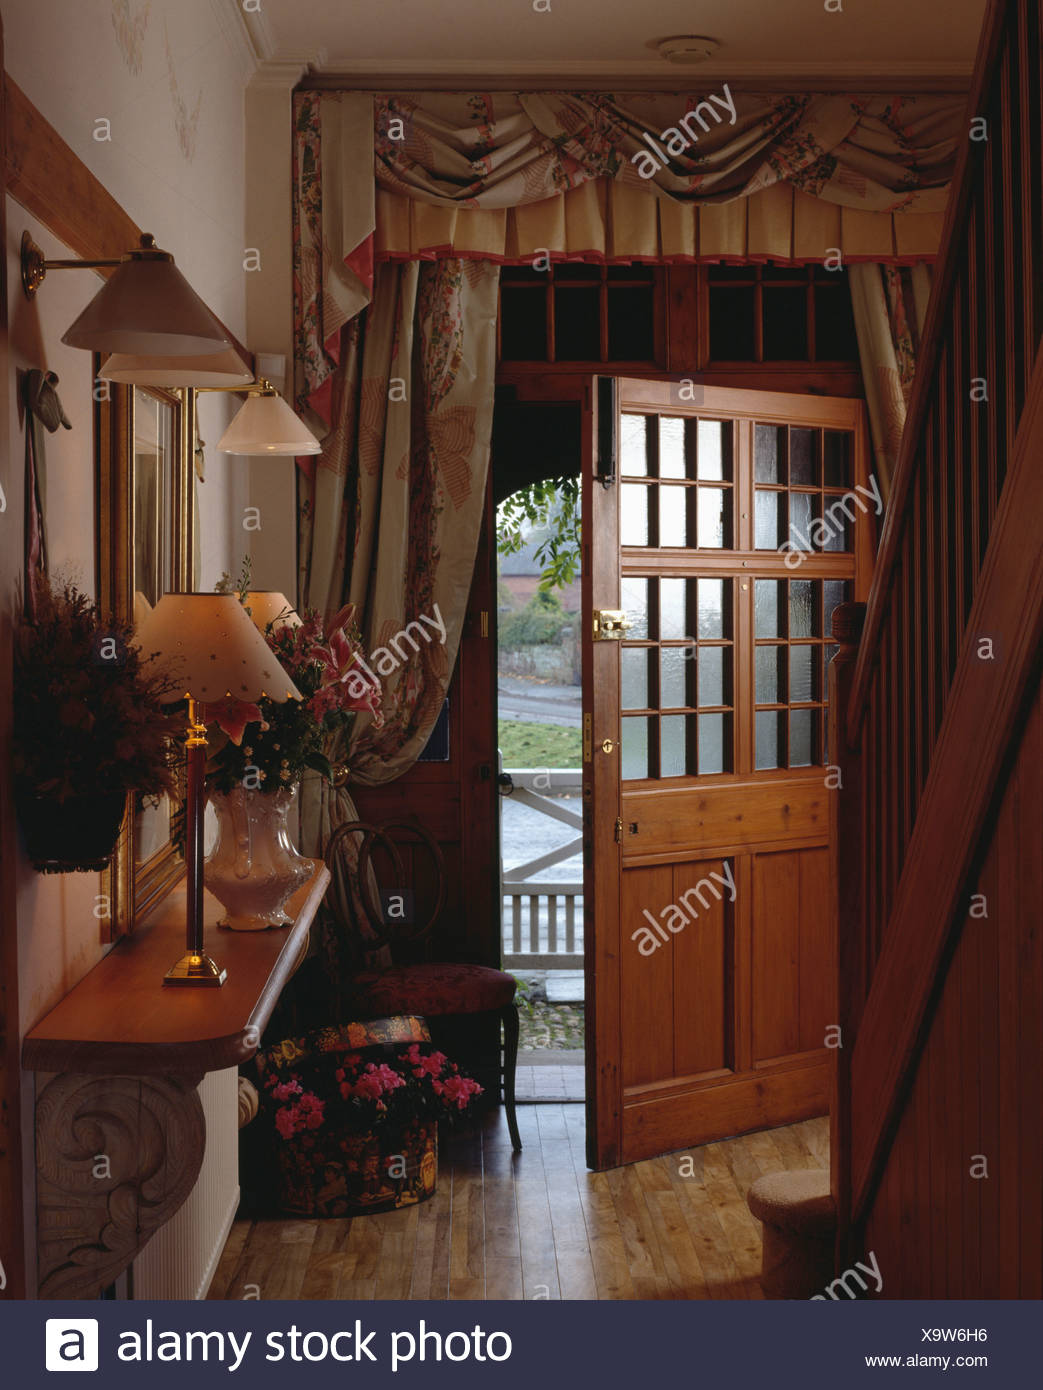 Opulent Curtains At Half Glazed Open Front Door In Country Hall With Lamps  On Console Table